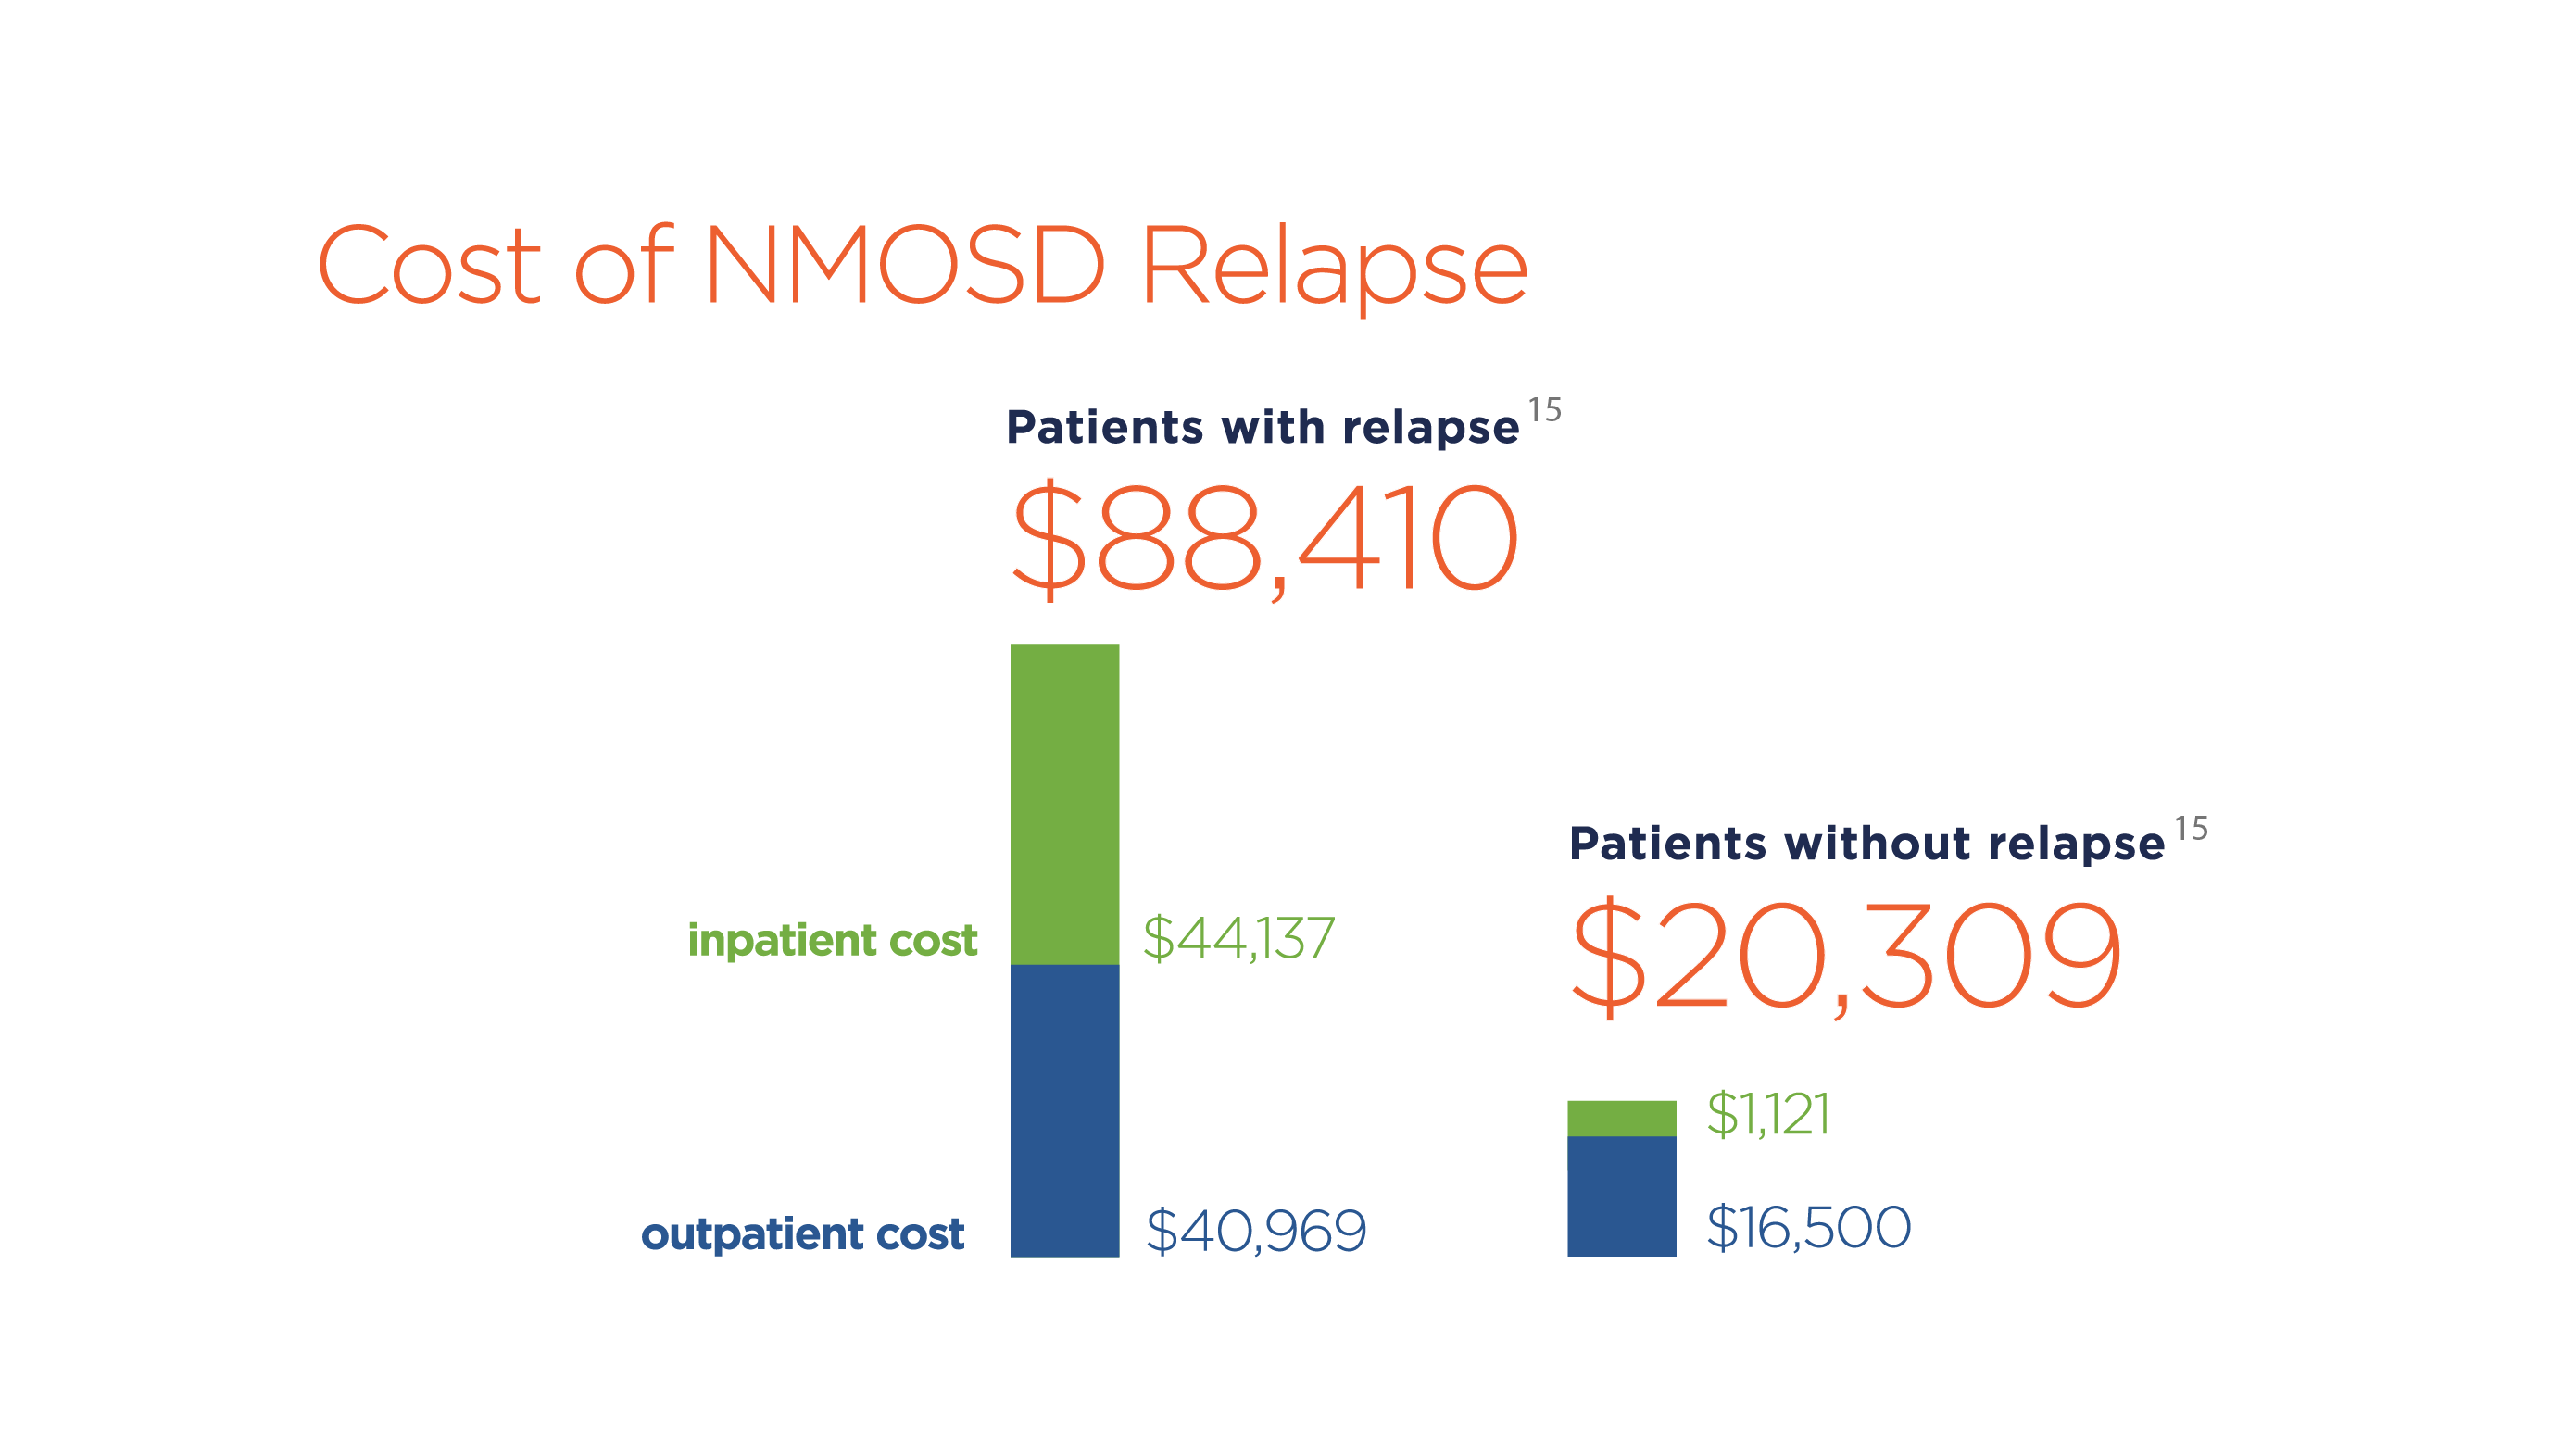 Individuals with NMOSD who experience a relapse have four times the direct medical costs as those who do not relapse.<sup>15</sup>